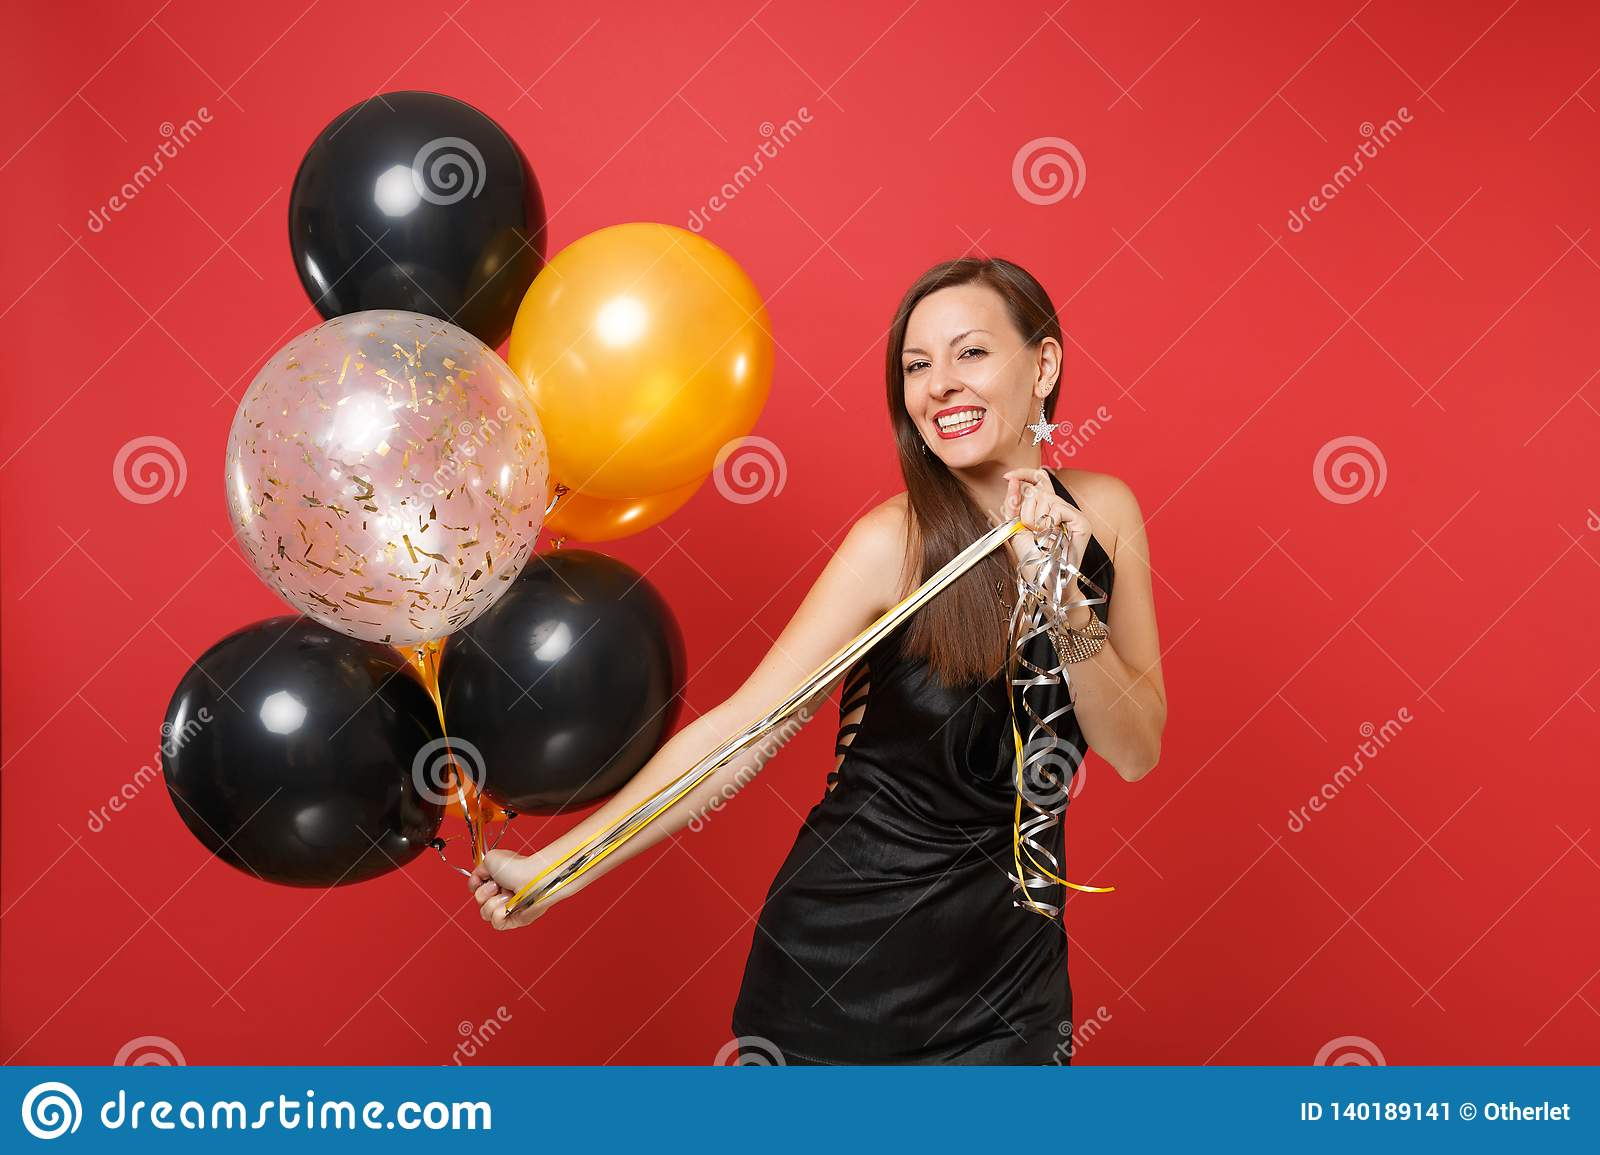 Beautiful young woman in little black dress celebrating holding air balloons isolated on red background. St. Valentine`s